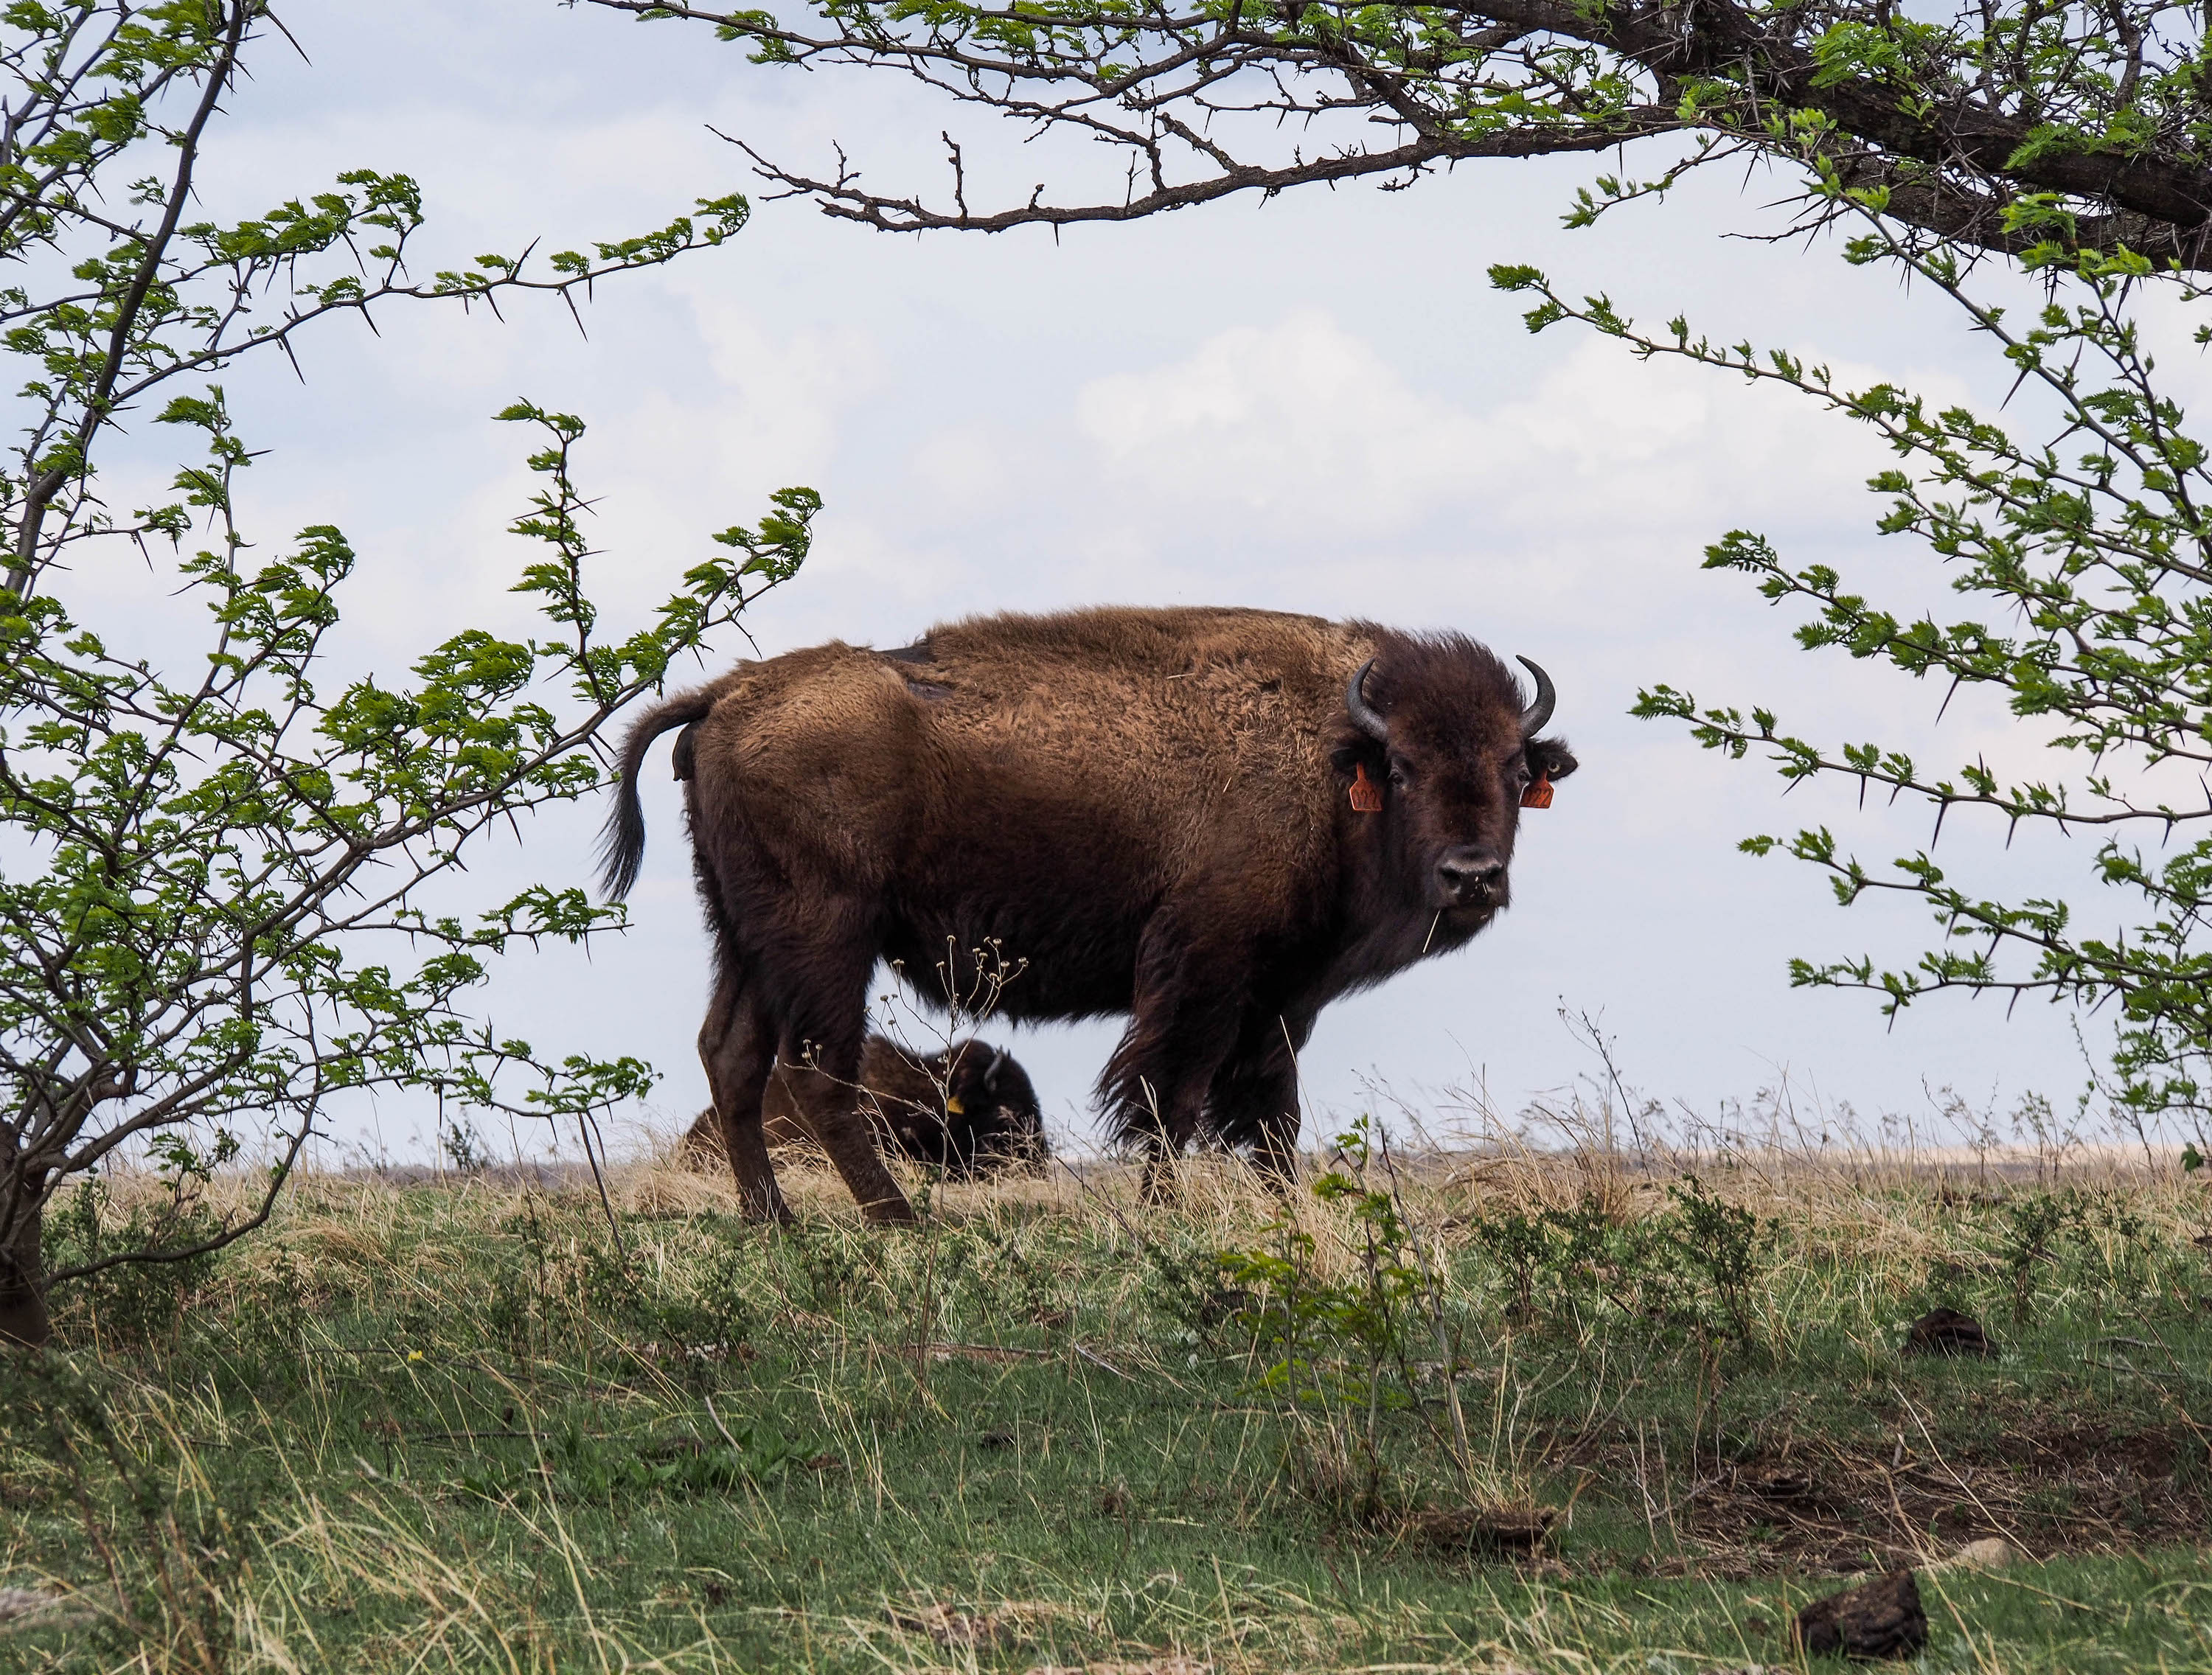 Restored bison, Konza Prairie, Kansas. Photo: Julian Hoffman.